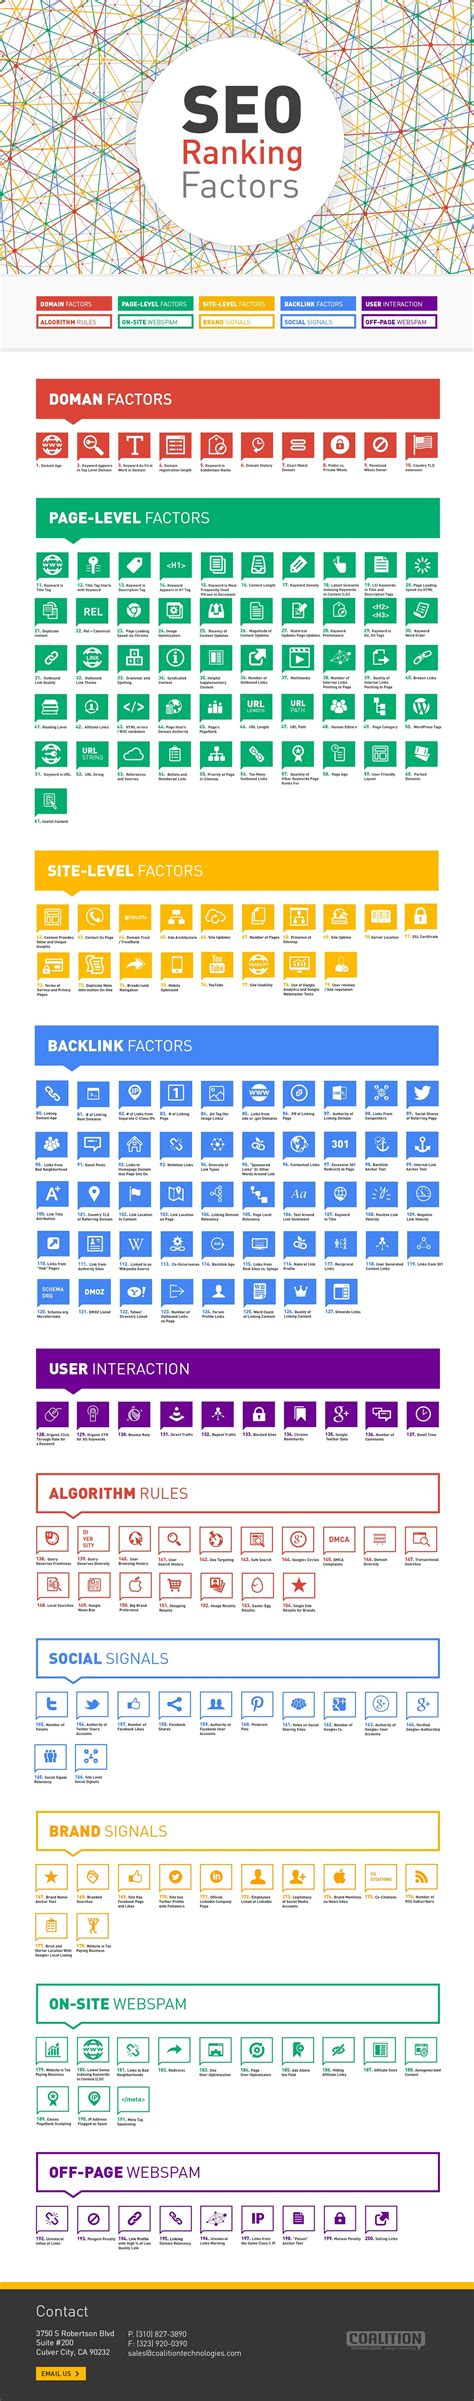 Seo Ranking top 200 most important seo ranking factors infographic